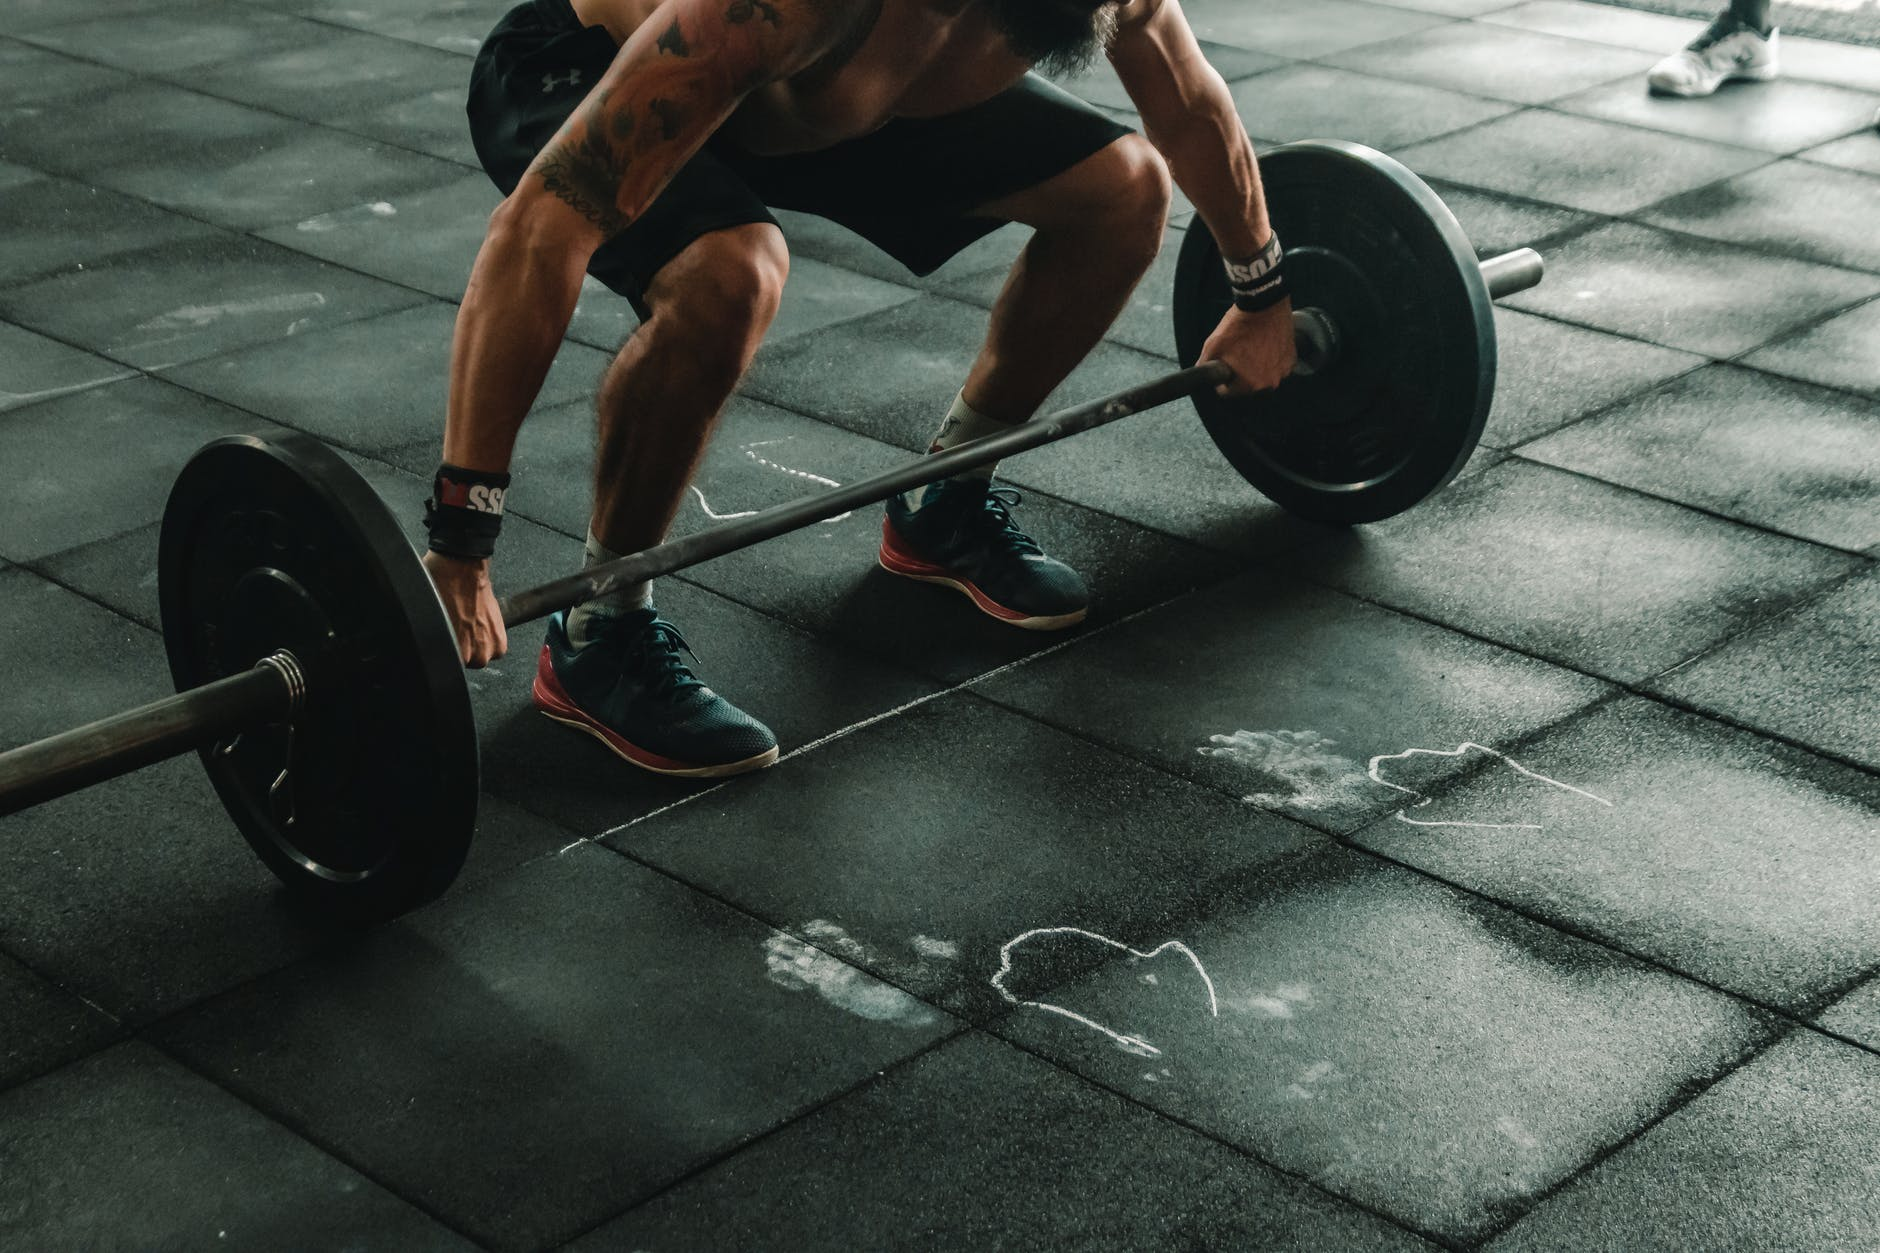 What Can You Do to Have Strong Muscles? Let's find Out